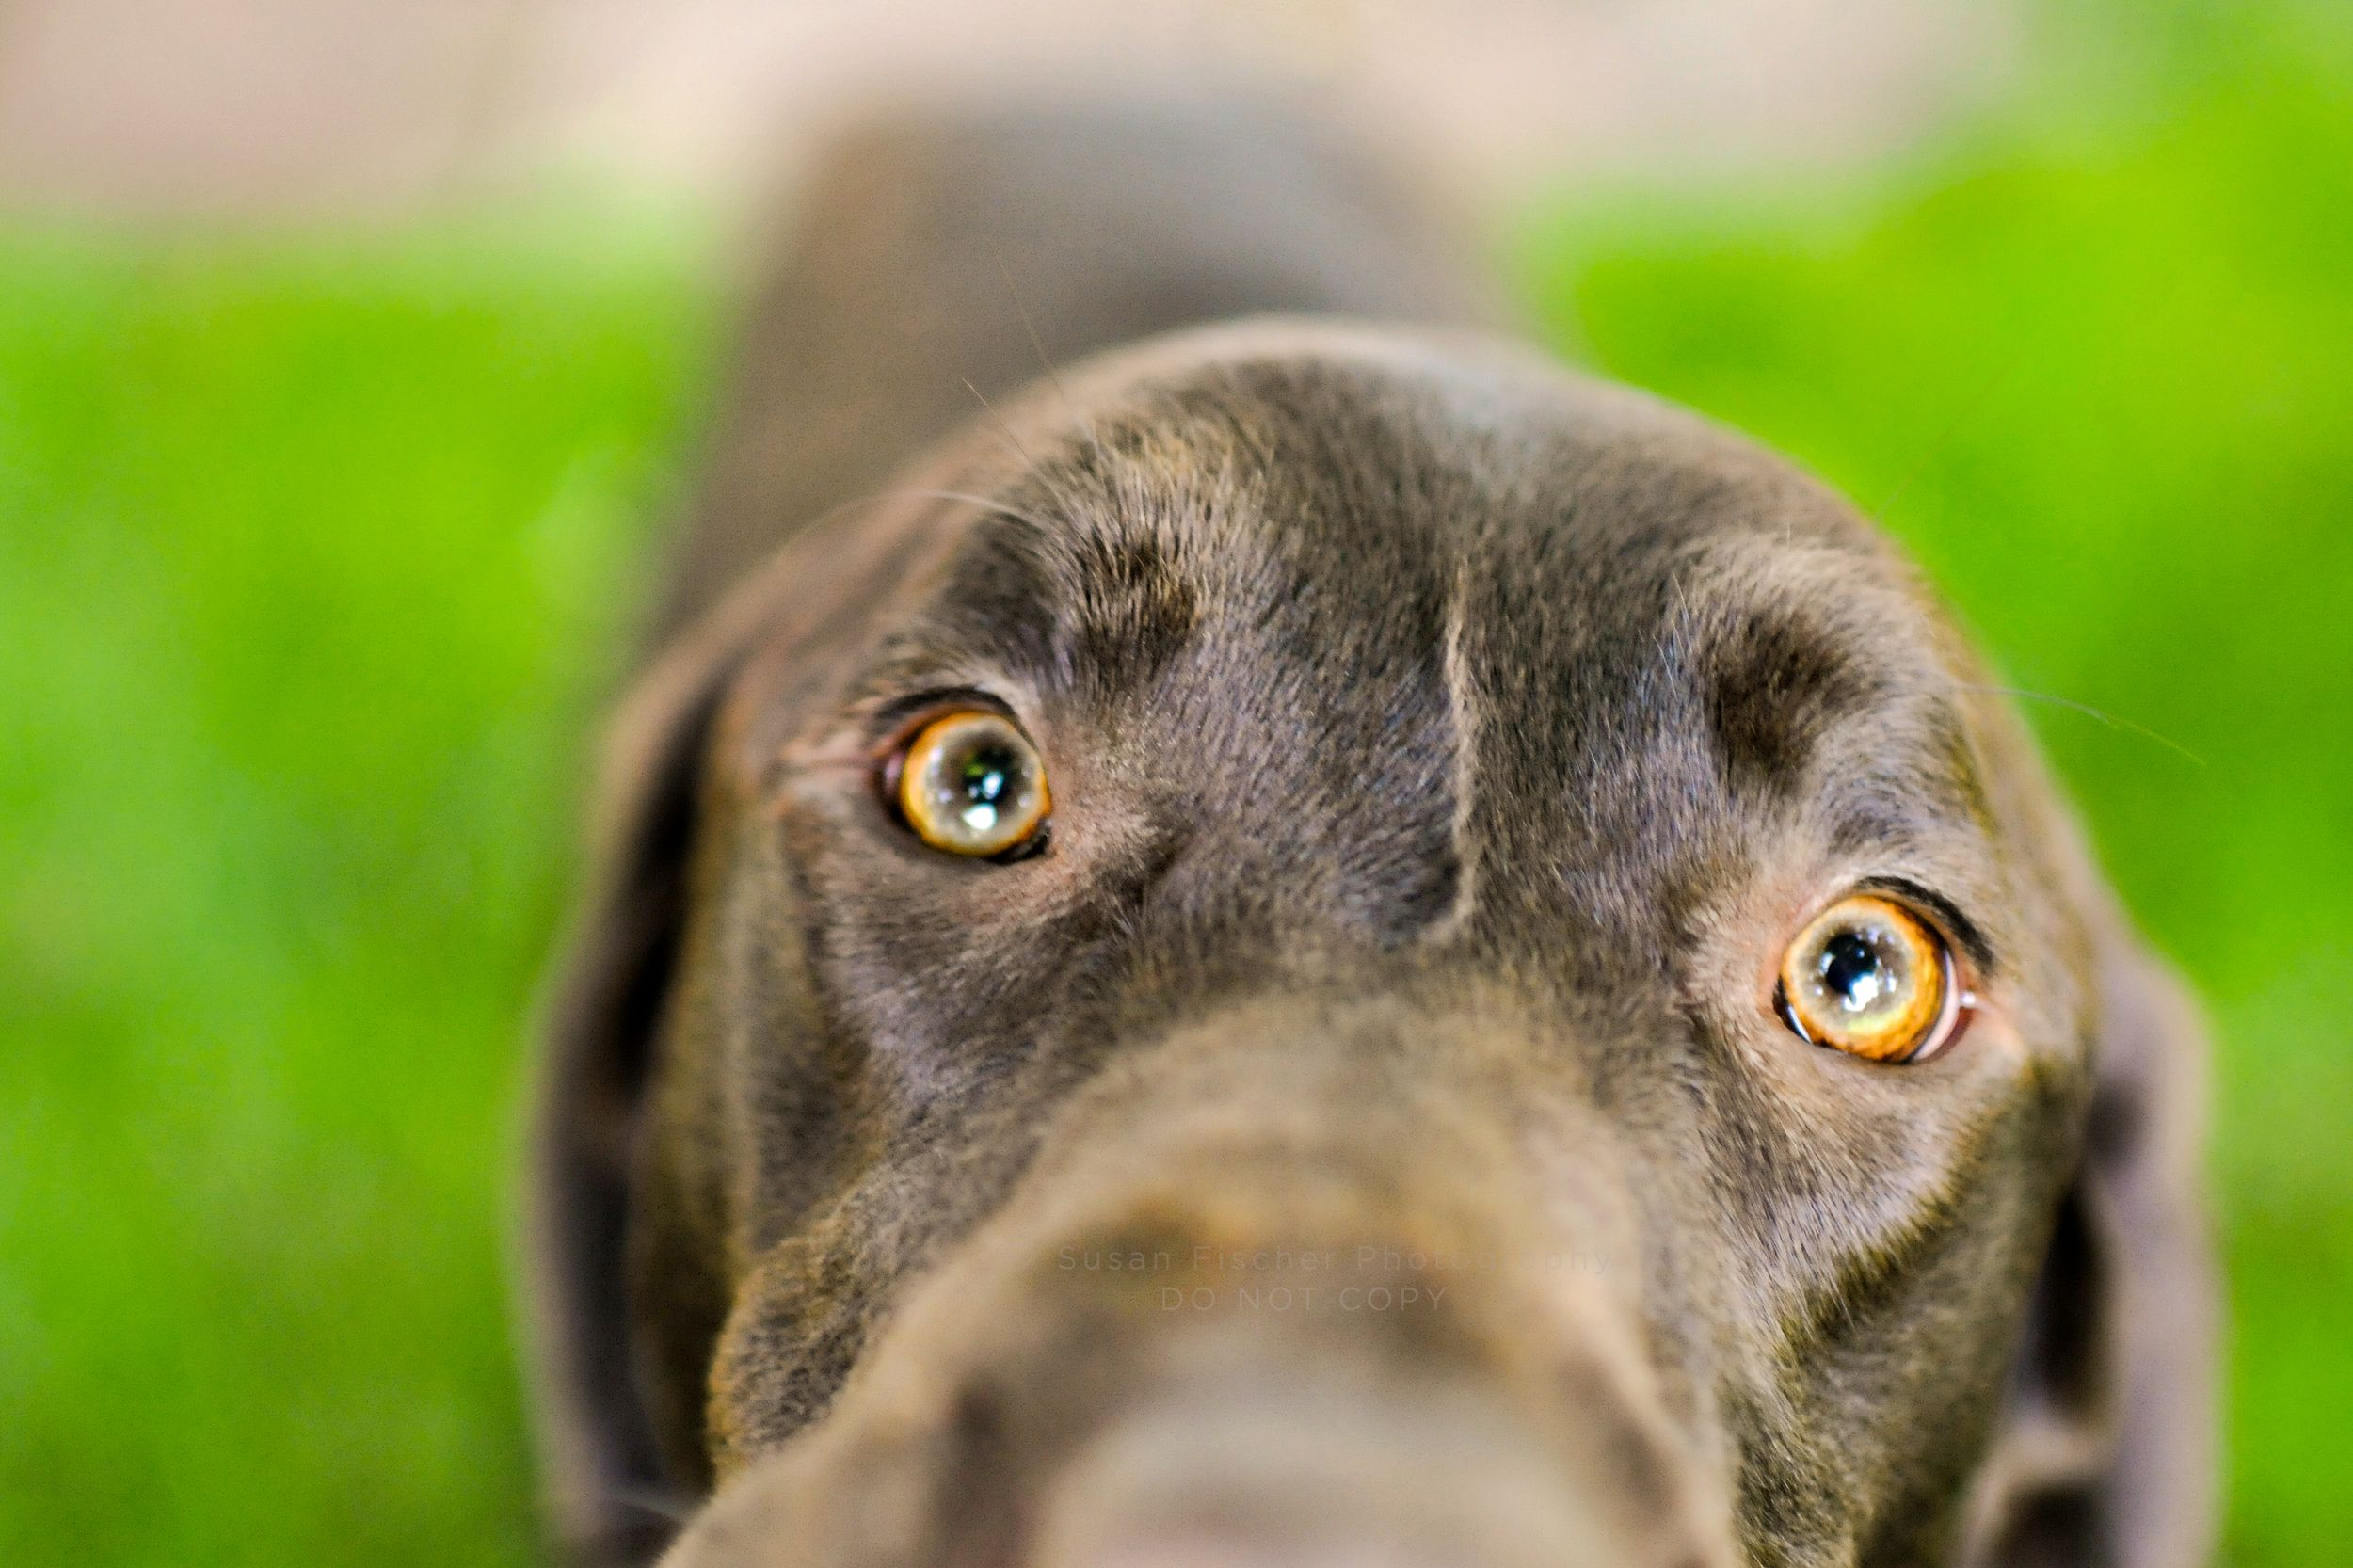 Eyes of a chocolate Labrador Retriever